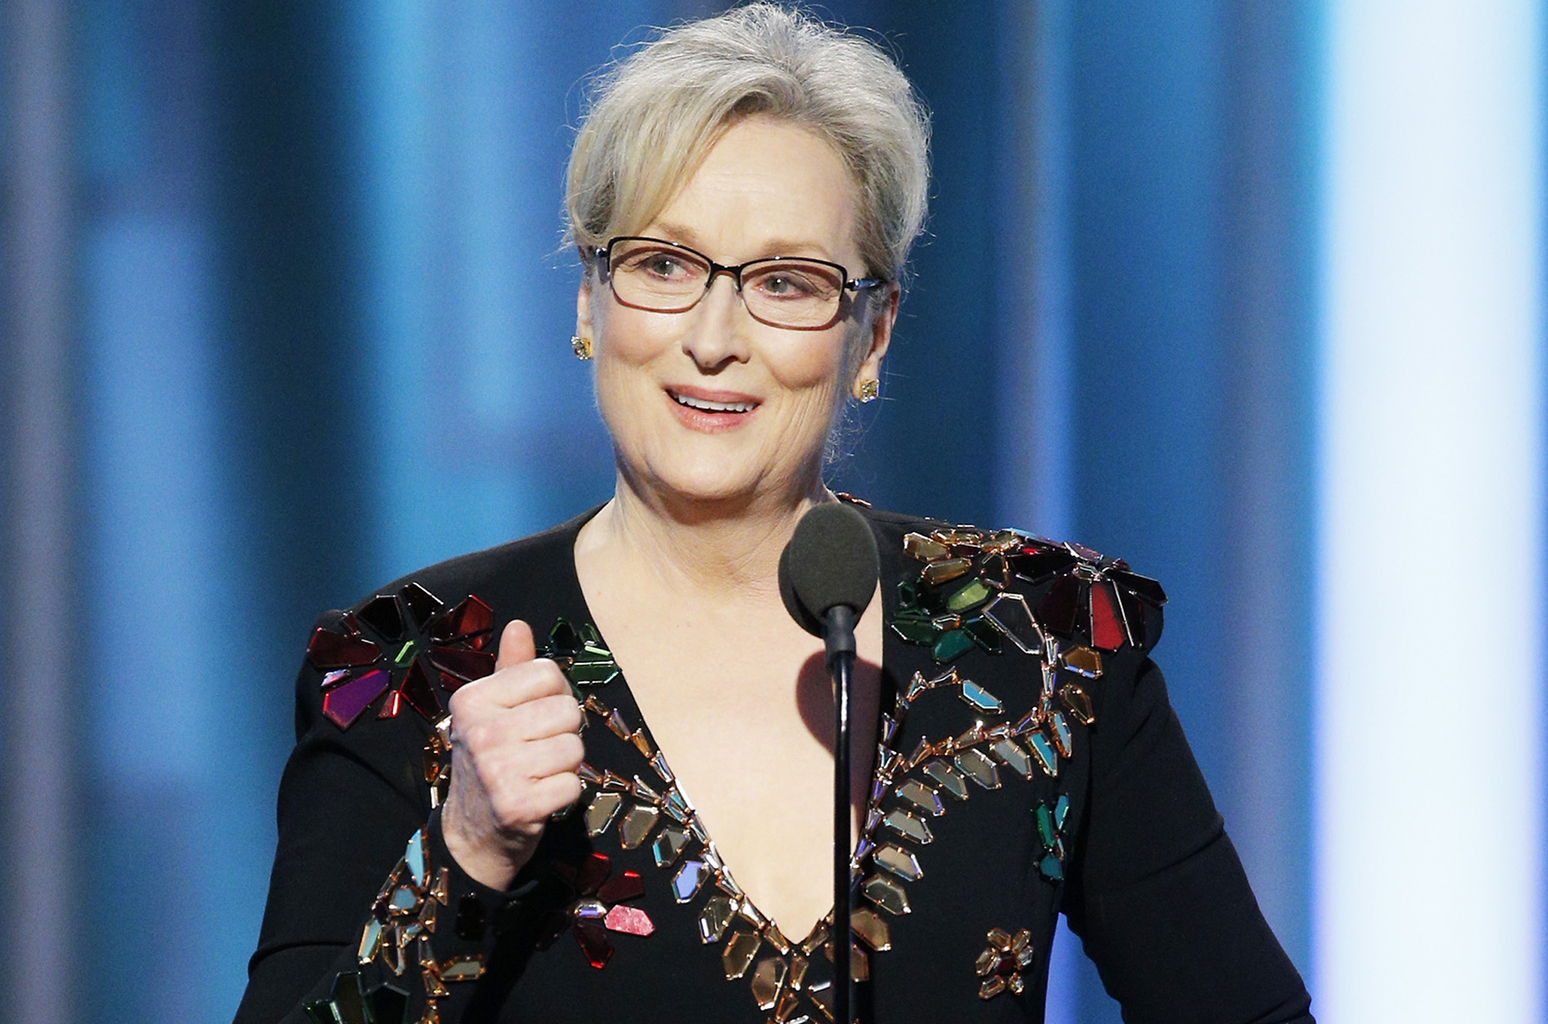 Meryl Streep, an older white woman with gray hair and glasses, delivers a speech at the Golden Globes